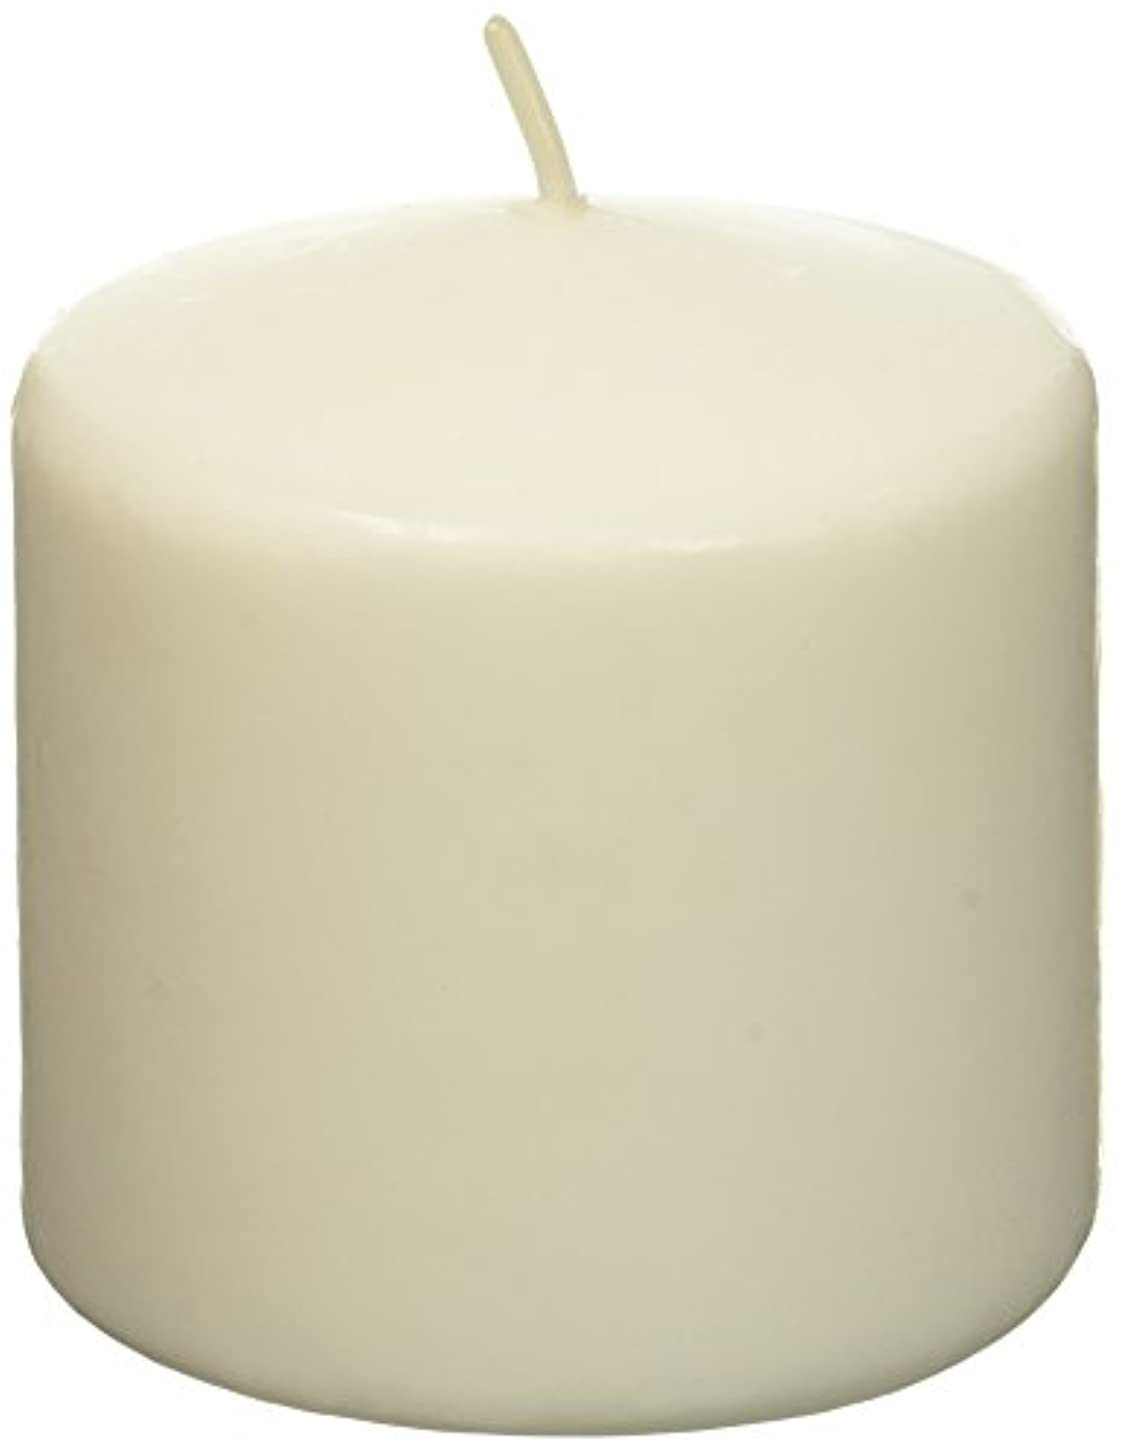 フィルタ底急ぐZest Candle CPZ-007-12 3 x 3 in. White Pillar Candles -12pcs-Case- Bulk